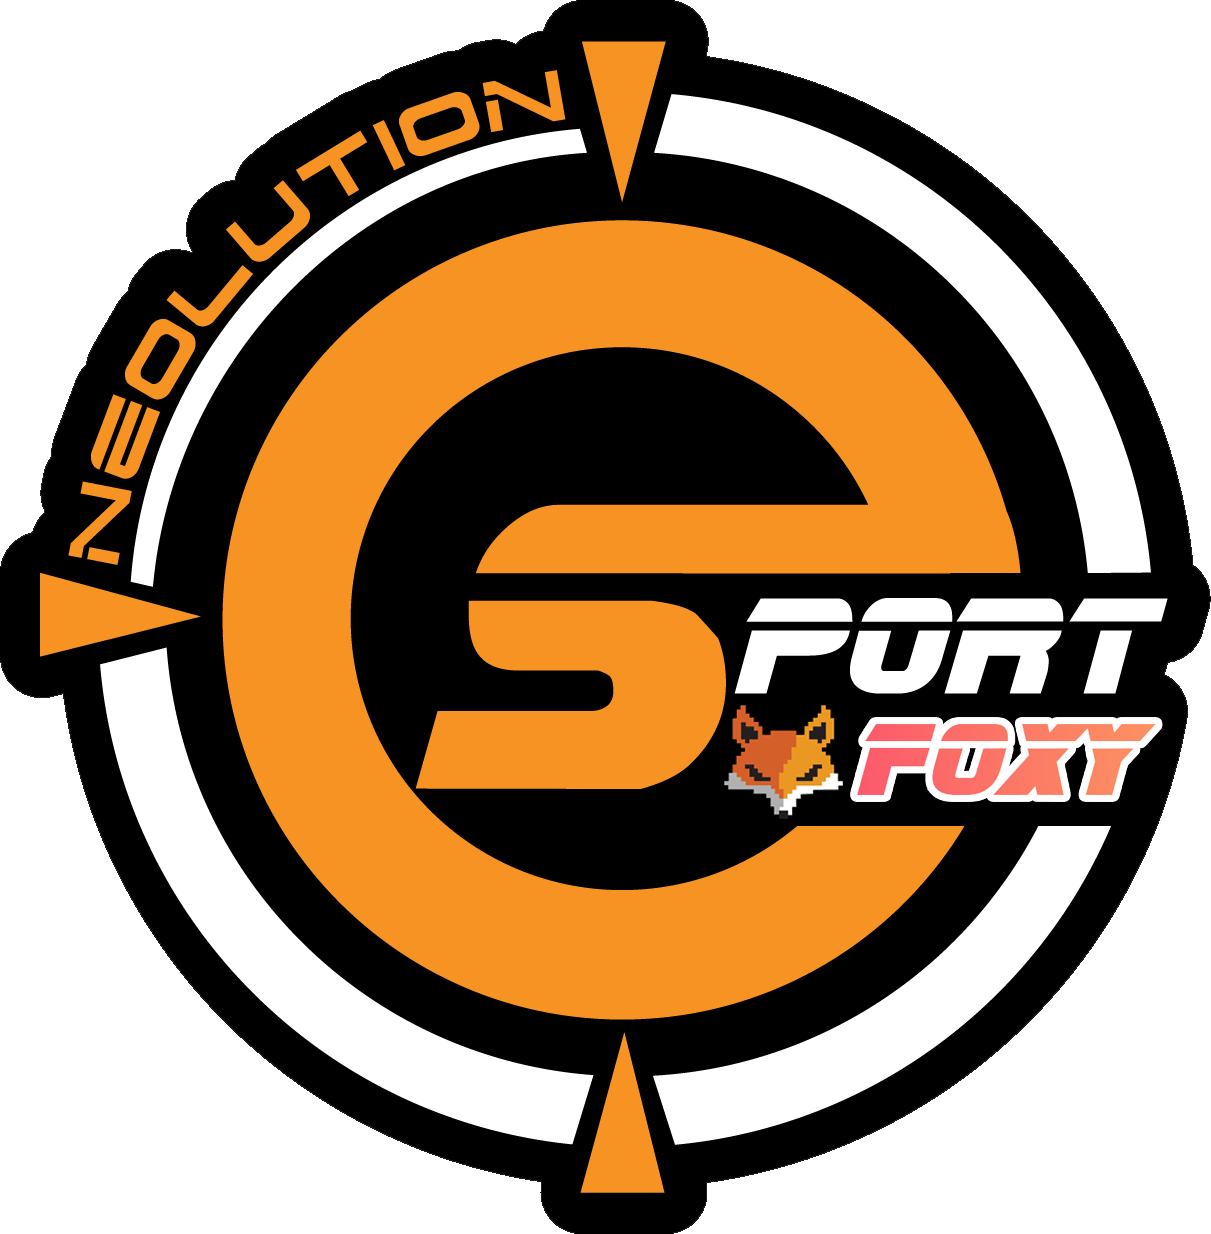 Neolution E-Sport - Imagination Is Yours